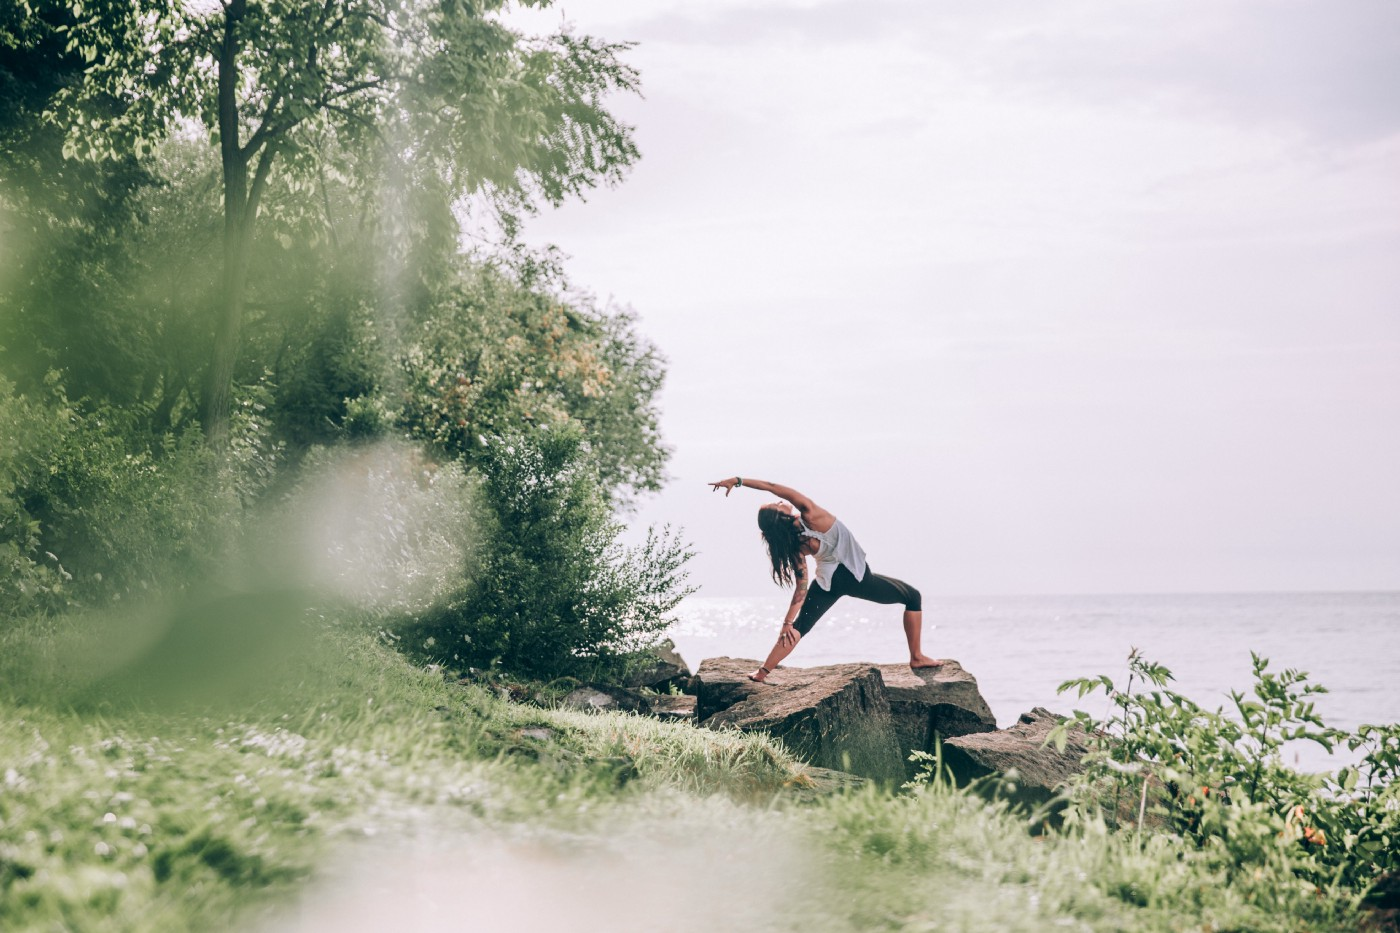 Photograph of a woman practicing yoga outdoors